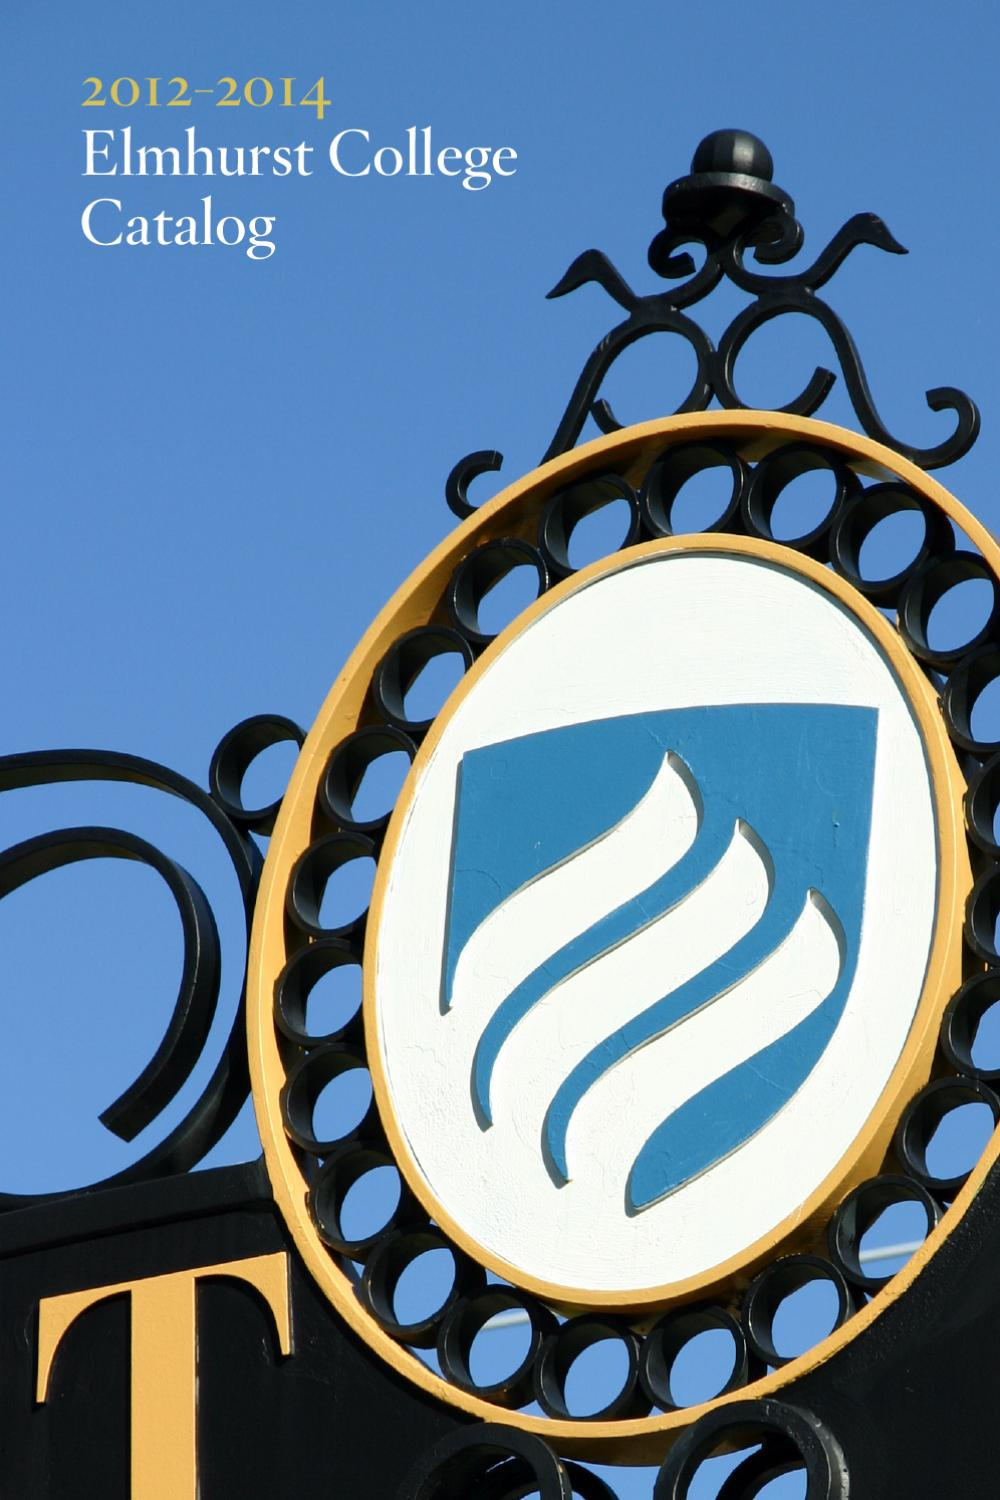 course catalog 2012 2014 by elmhurst college issuu